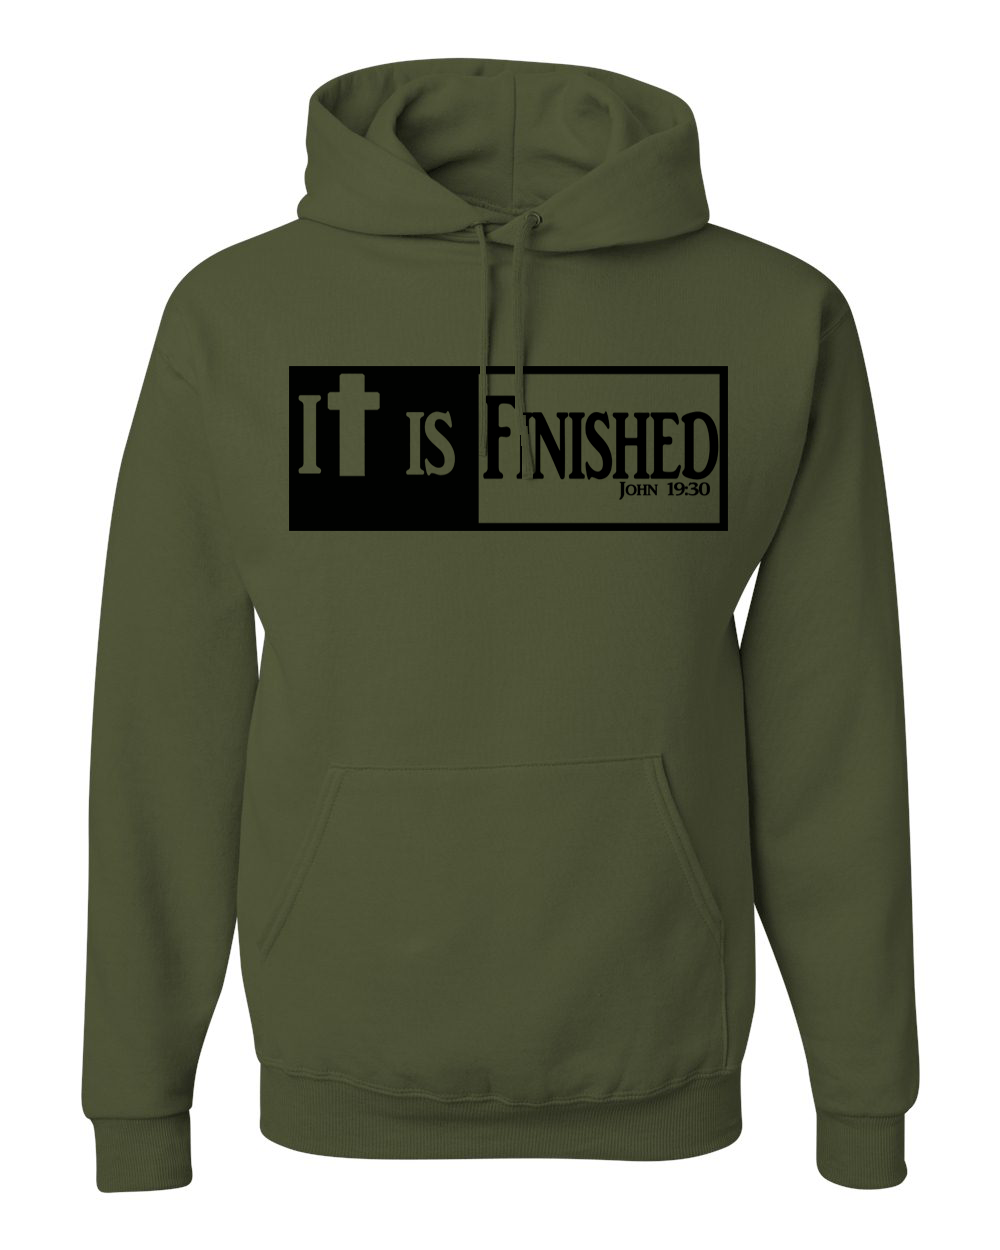 It is Finished Hooded Sweatshirt - Small / Military Green - Christian T-Shirt | Christian Gifts | Christian Apparel - 1